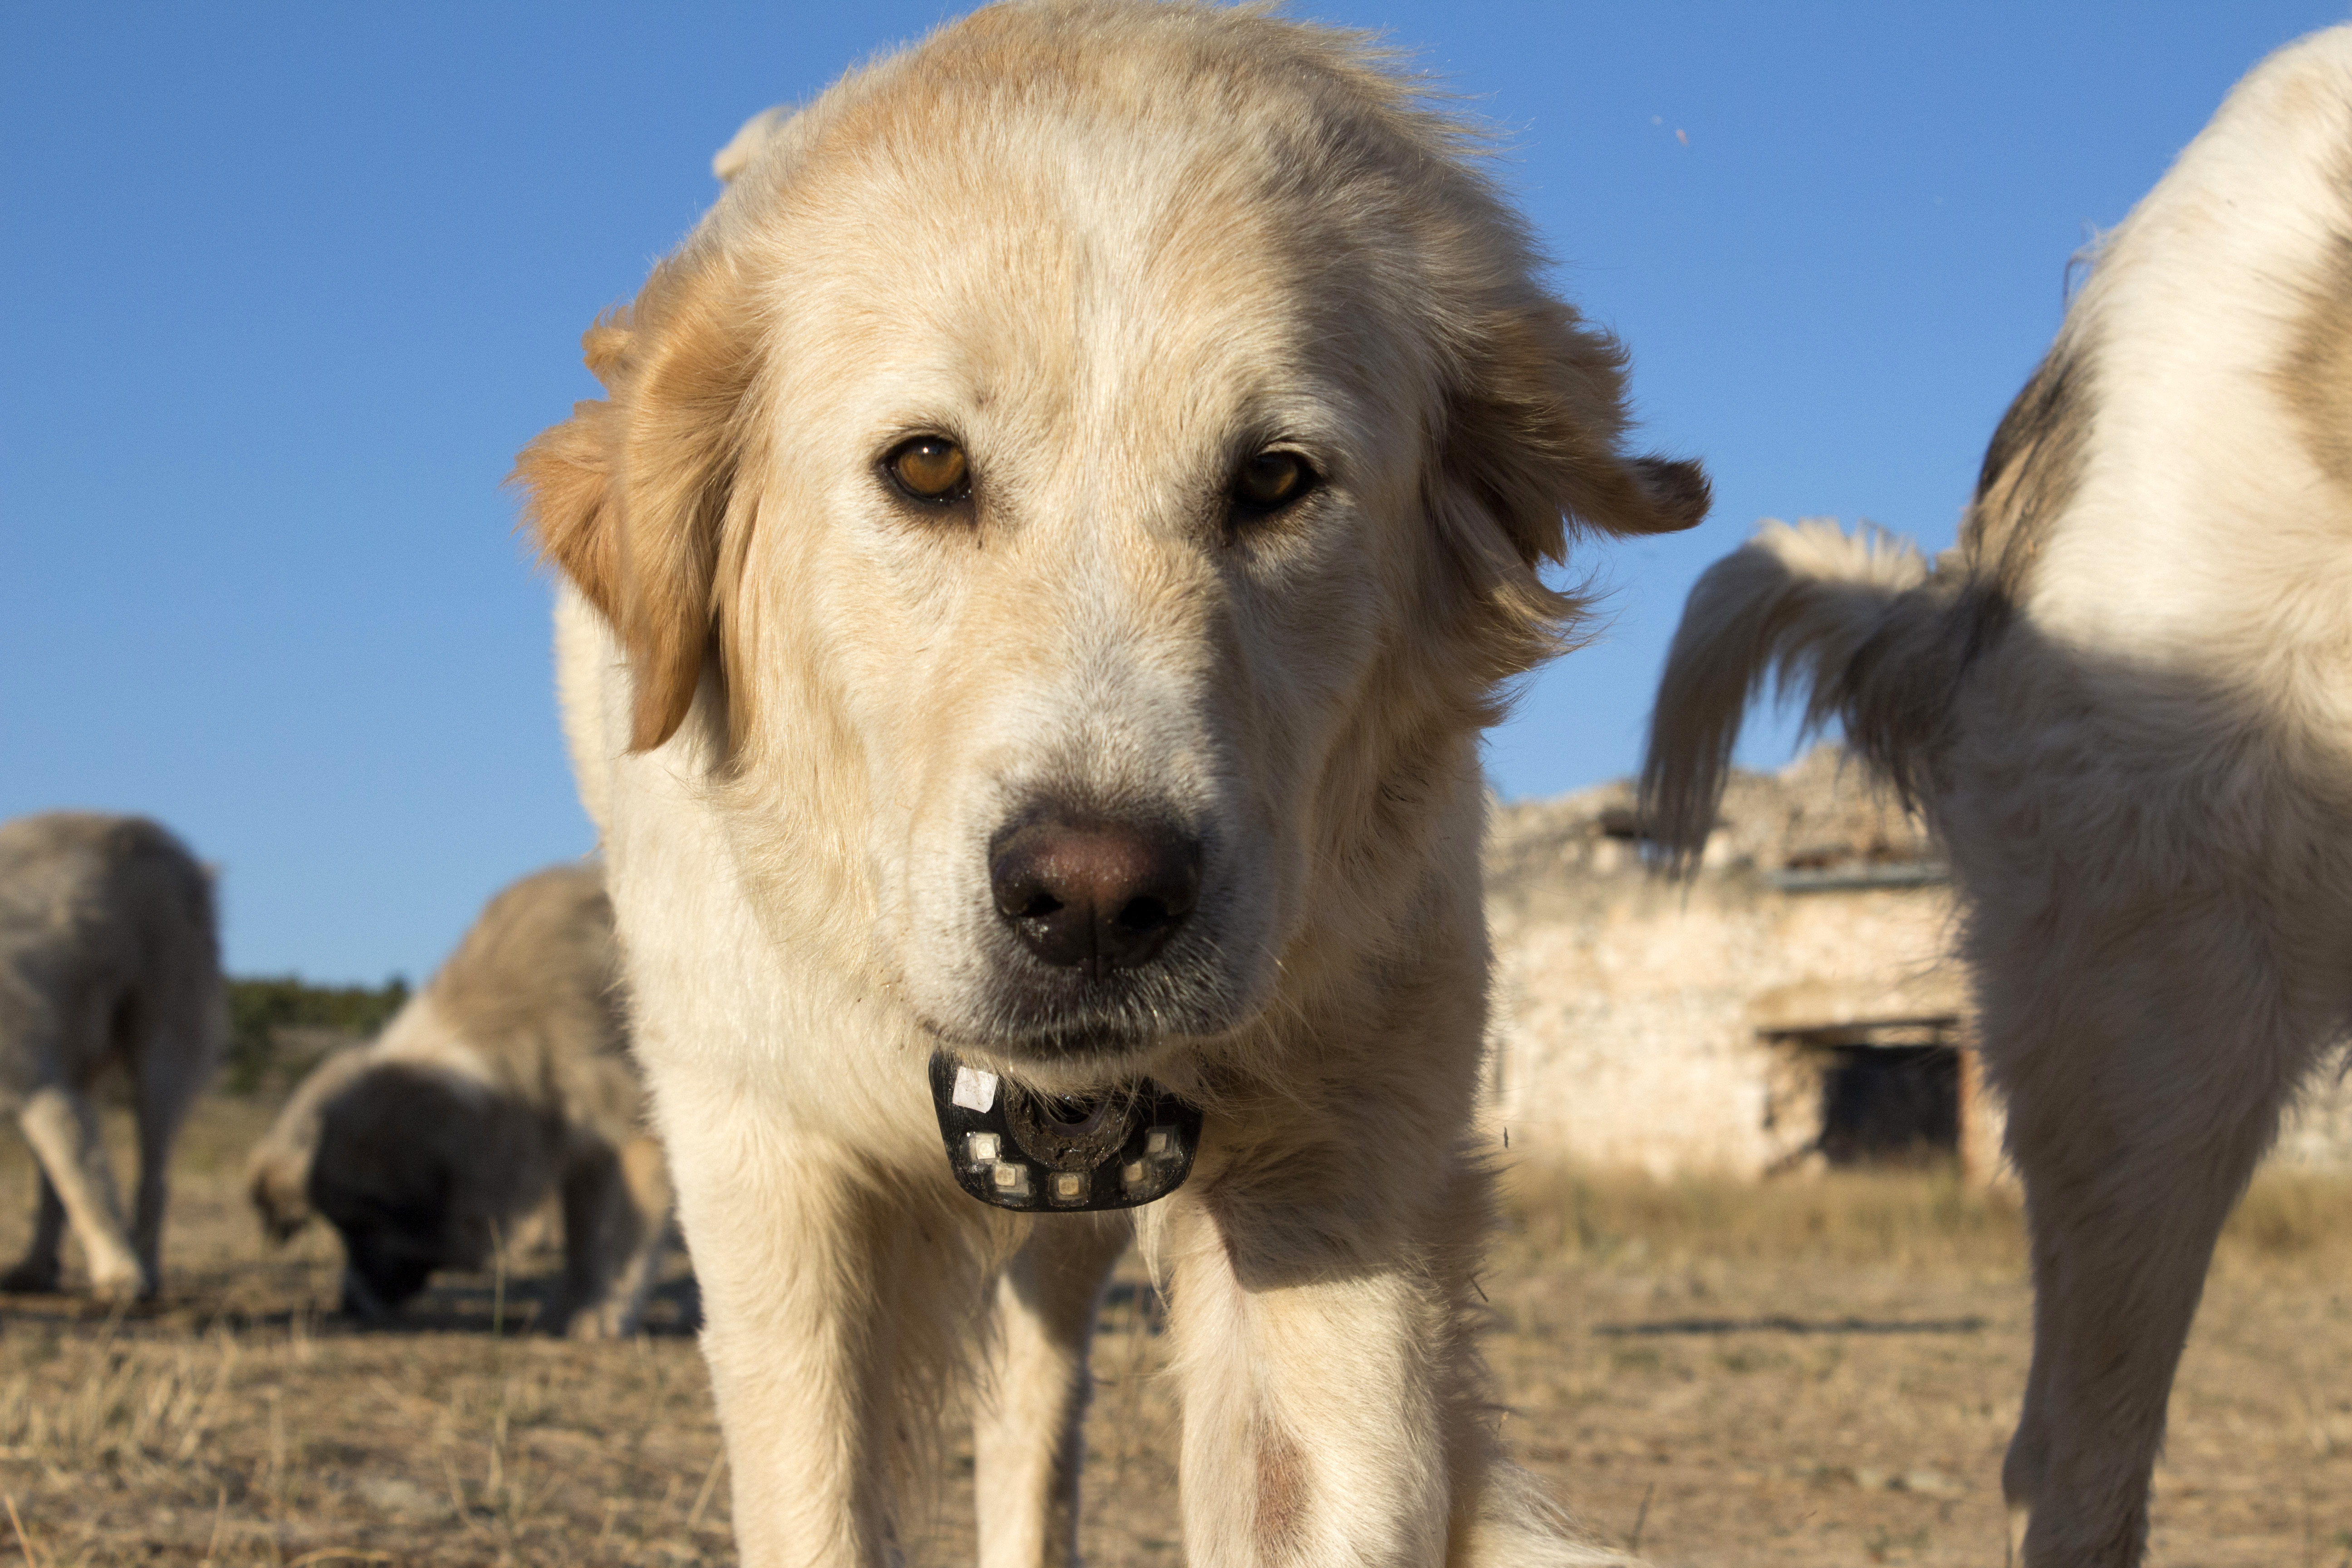 Animals with Cameras, A Nature Miniseries ~ Monday at 8pm